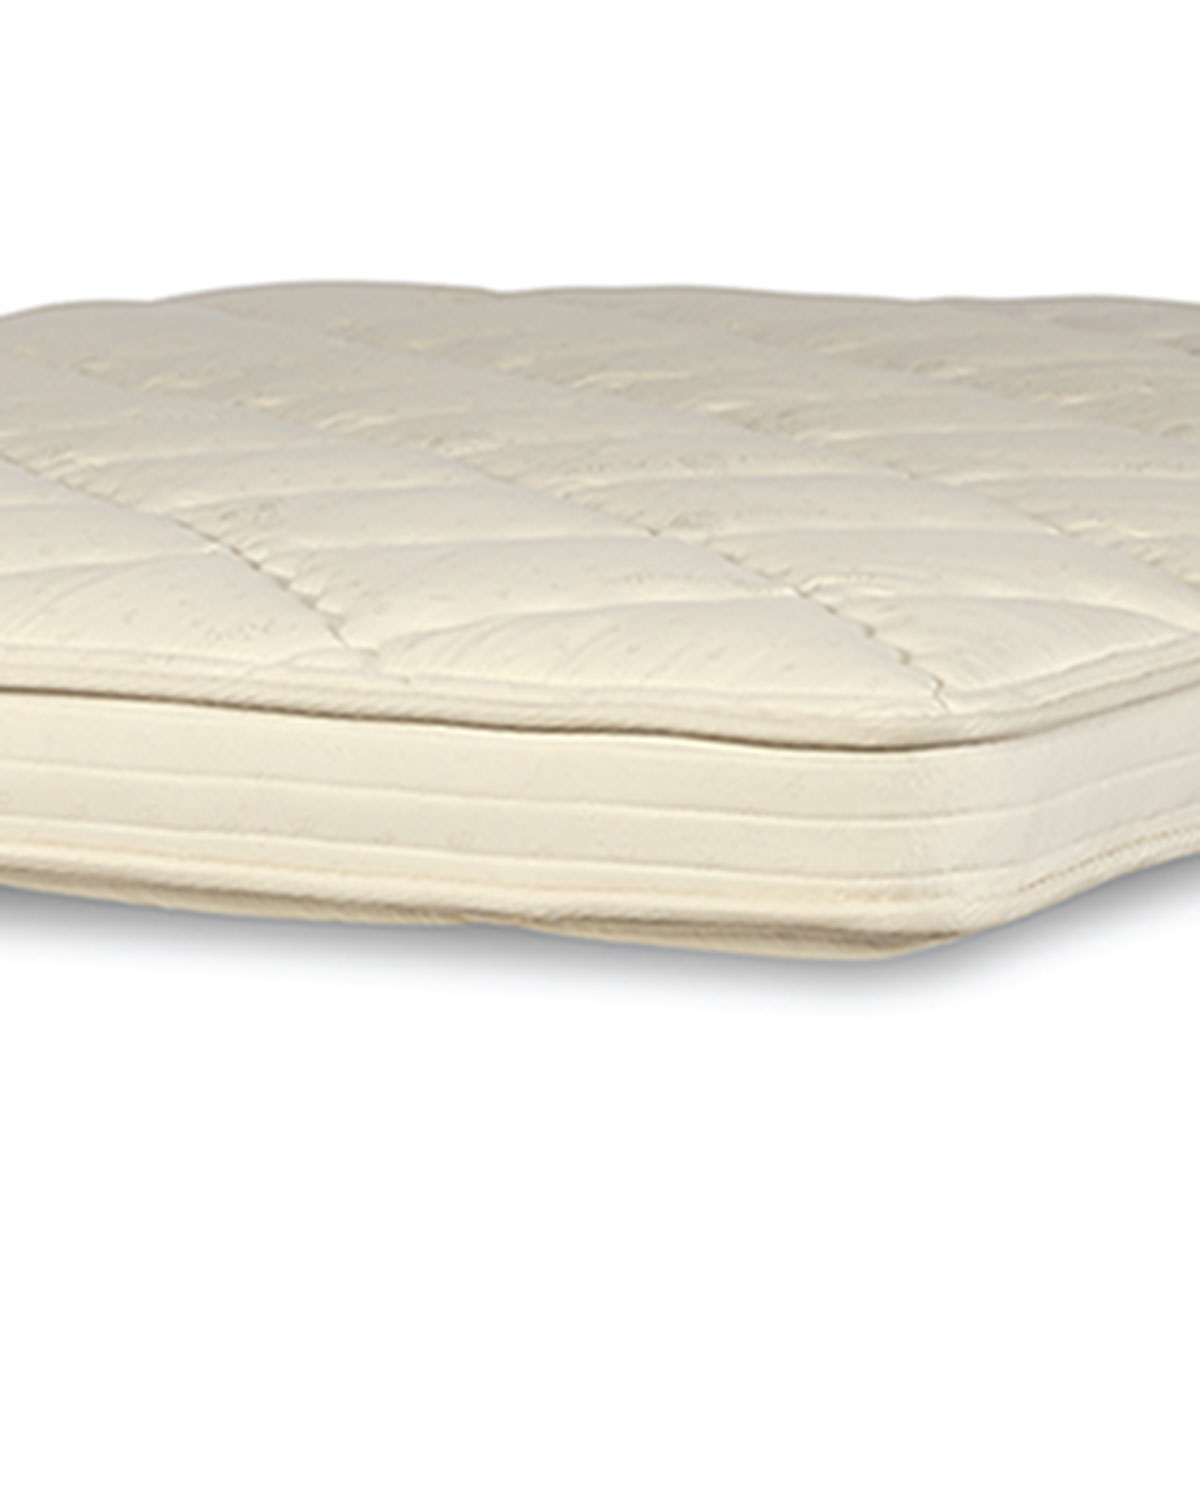 Royal-Pedic Dream Spring Deluxe Pillow Top Pad - Twin